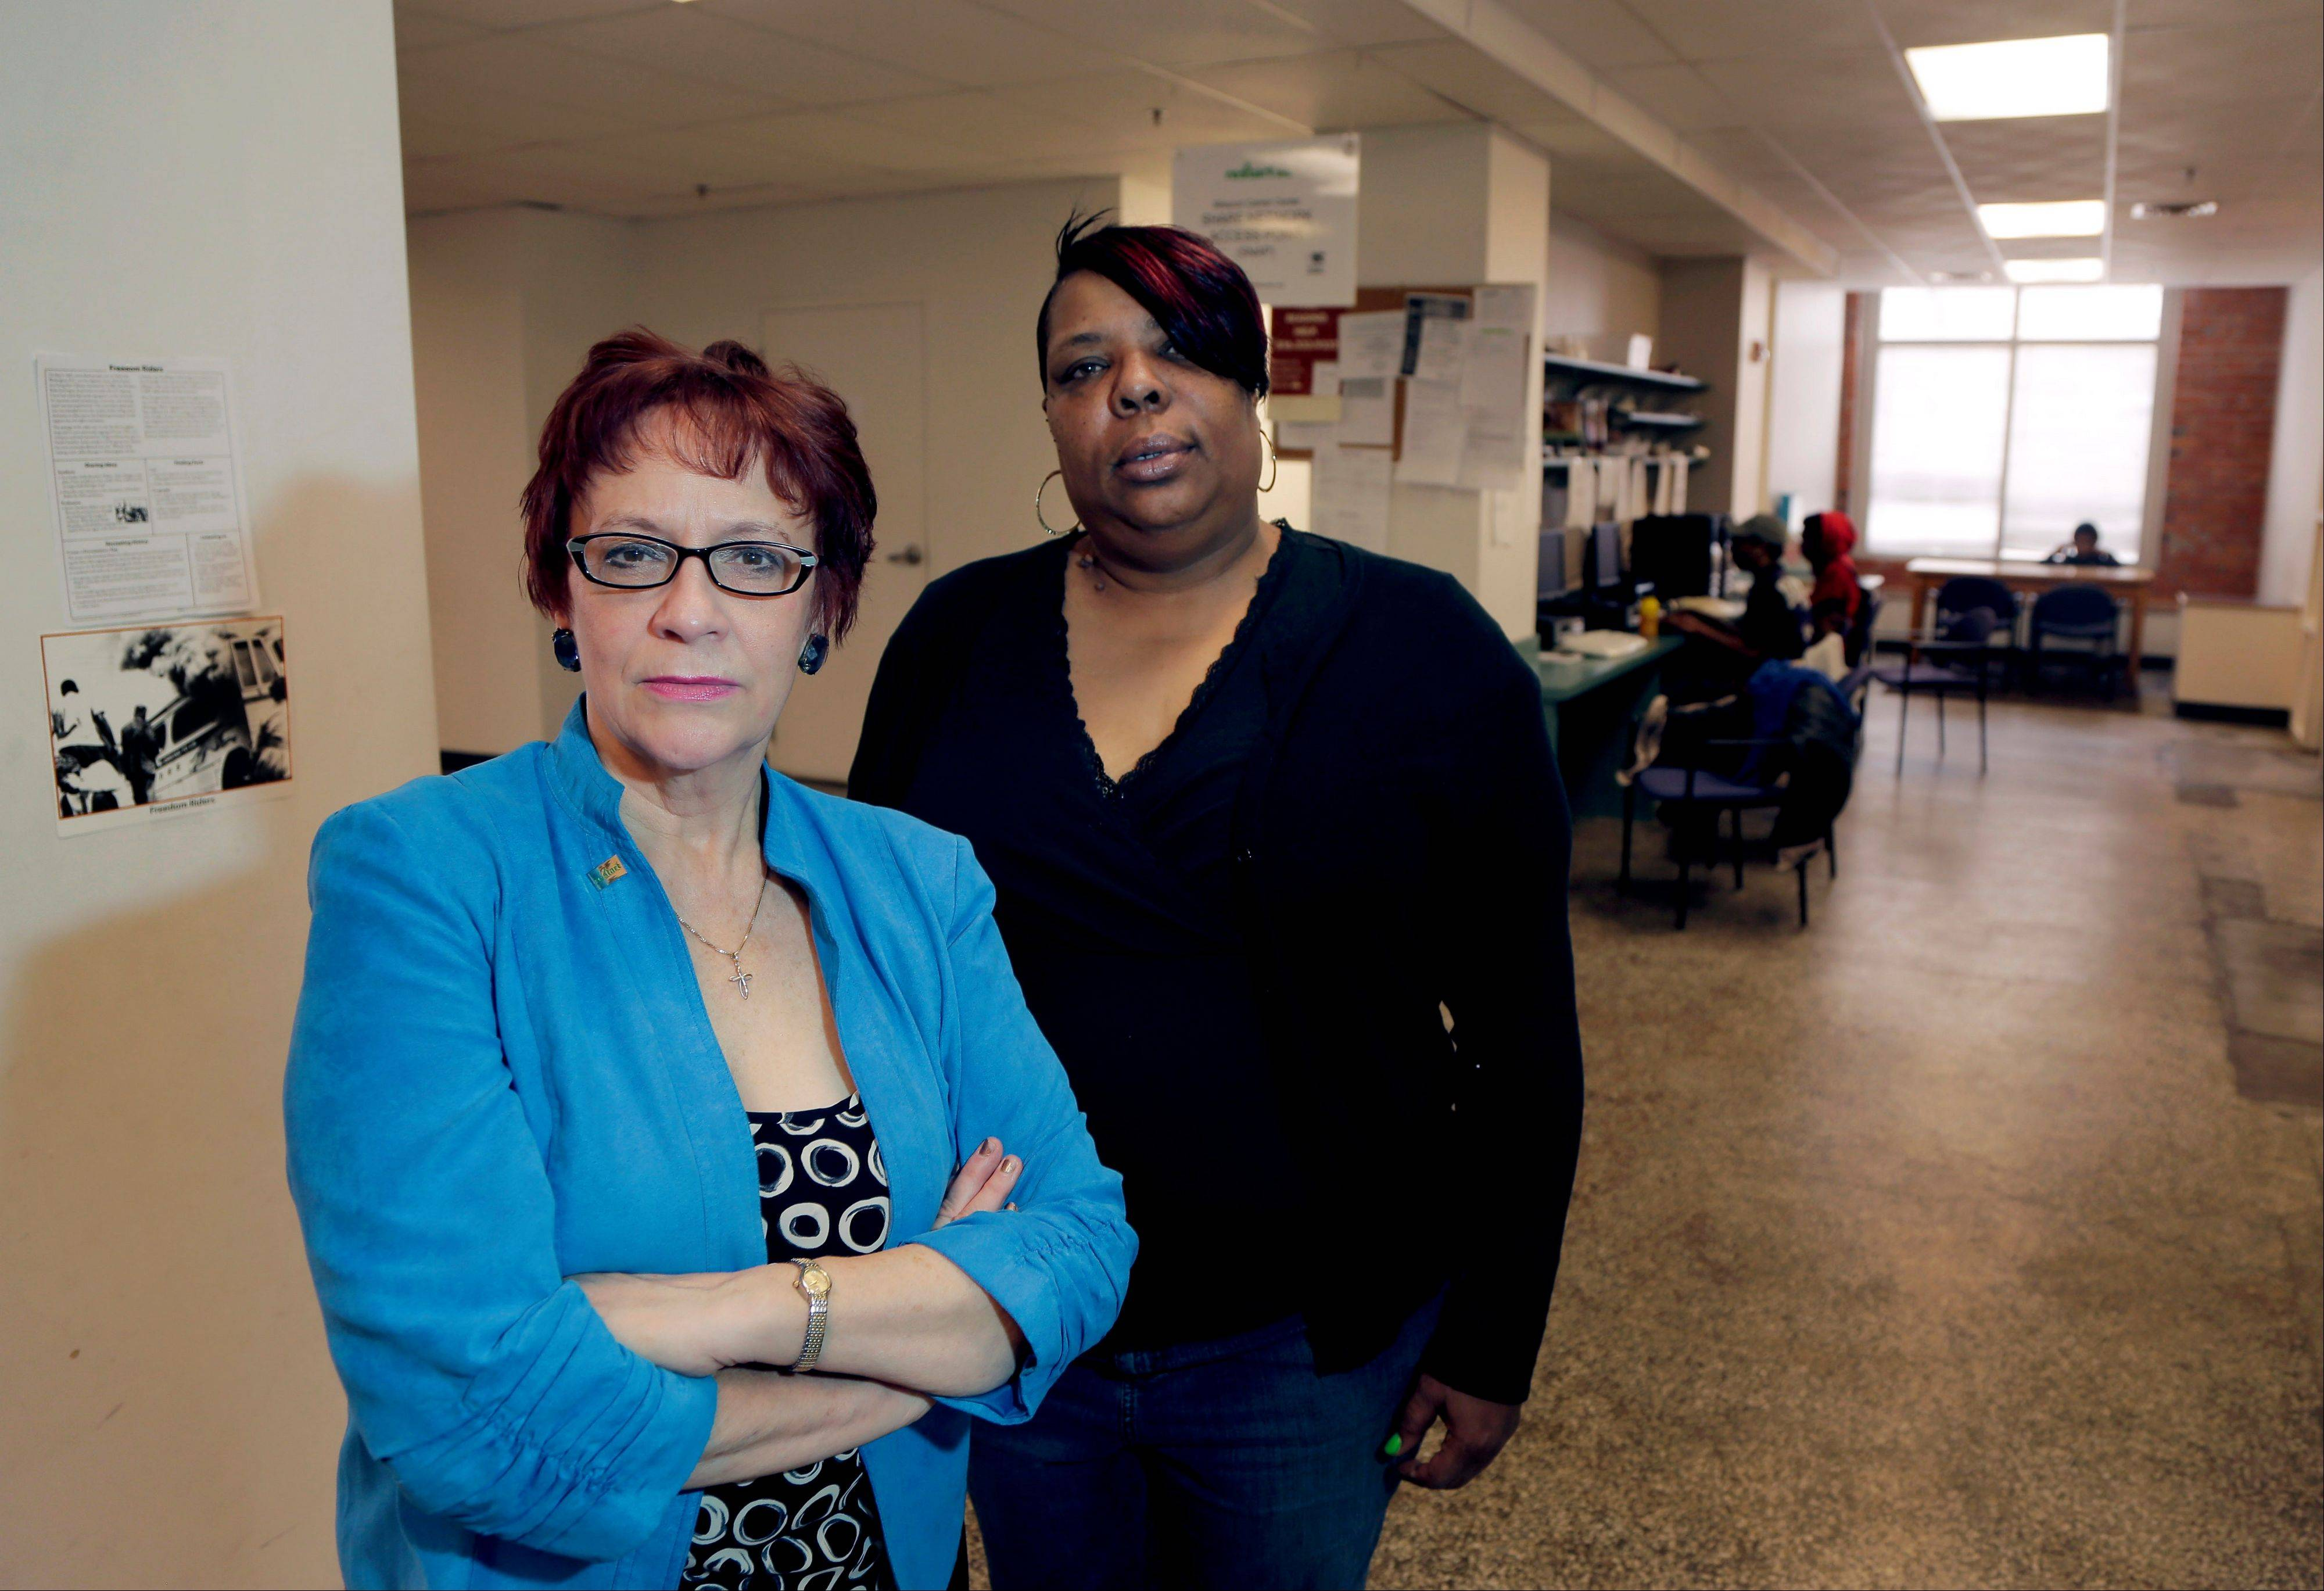 Evelyn Craig, left, executive director of reStart Inc., and LaTonya Jenkins, a reStart client who lives at the facility, pose at the homeless shelter in Kansas City, Mo. The women are concerned that Missouri's refusal to expand Medicaid under the Affordable Care Act will harm residents of the shelter like Jenkins.